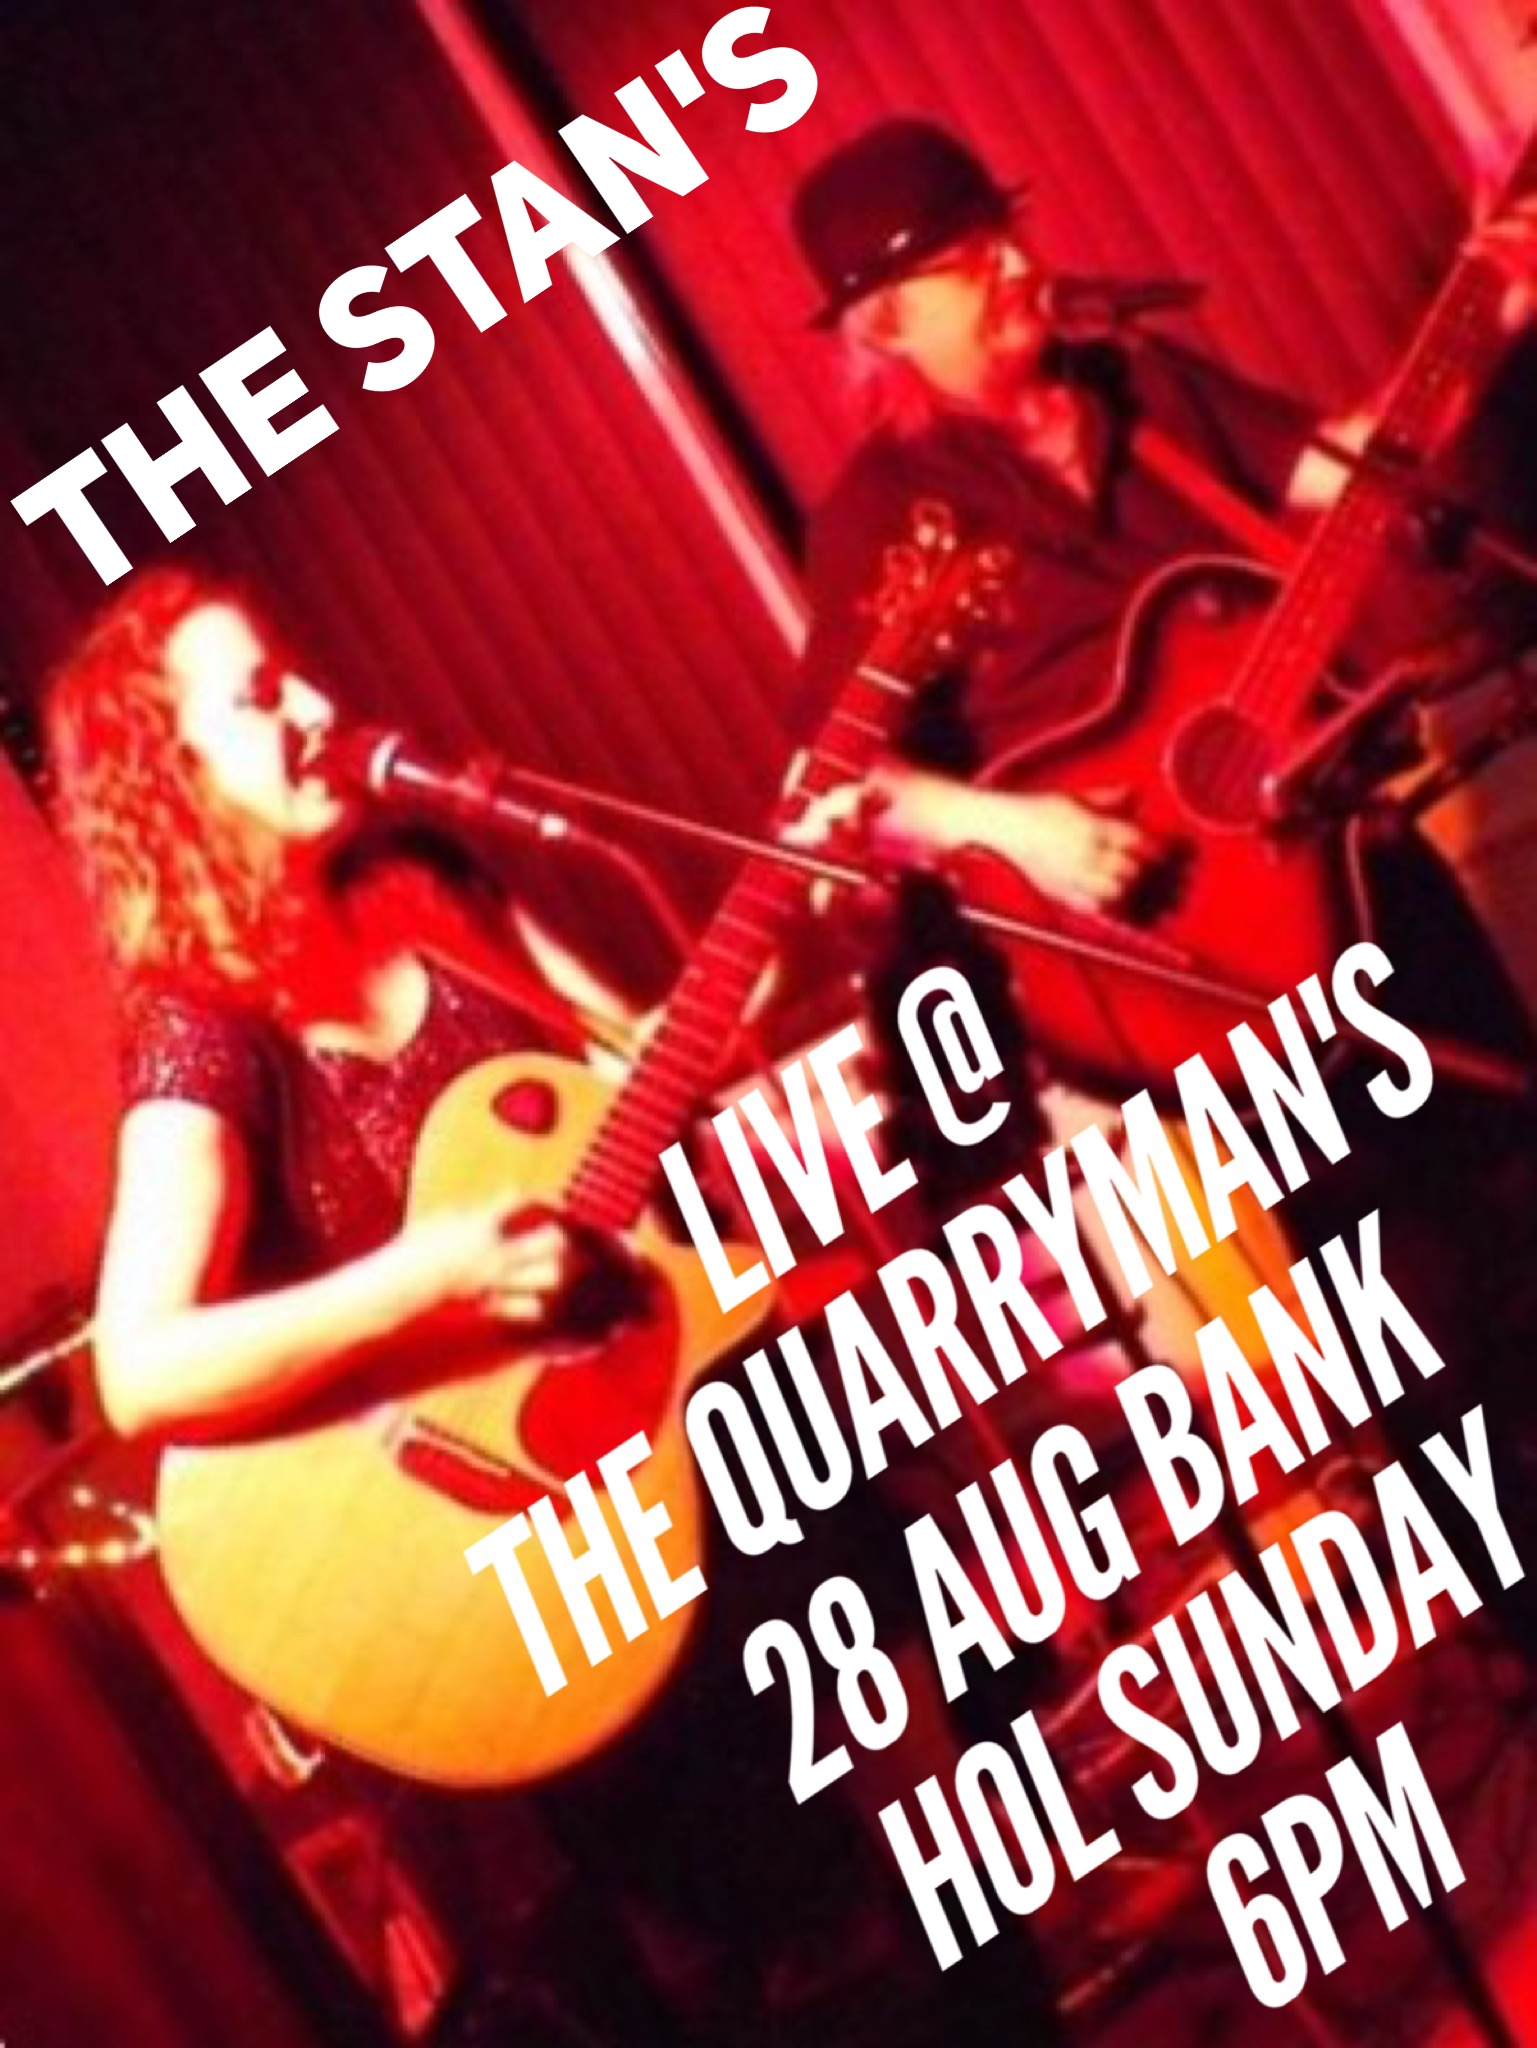 The Stan's Duo live at the Quarryman's 28th Aug 6pm